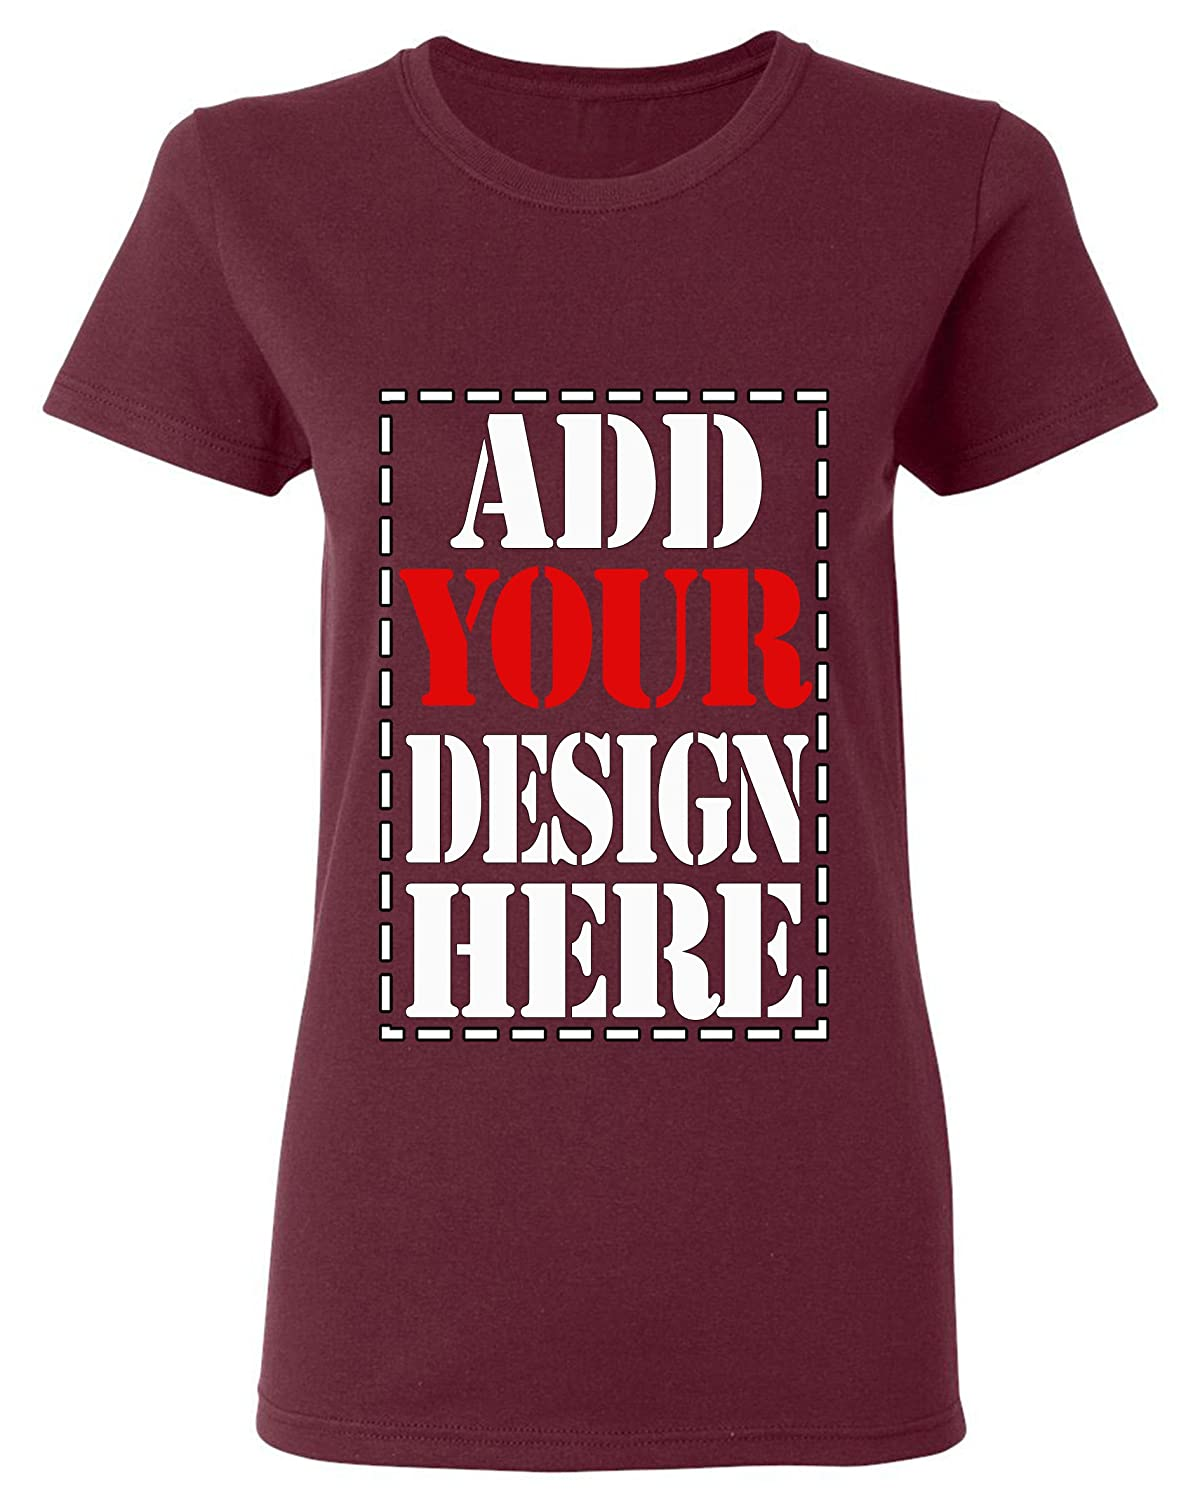 b04d6f53c9 Amazon.com  Design Your OWN Shirt Customized T-Shirt - Add Your Picture  Photo Text Print - Women Tee (Slim Fit)  Clothing